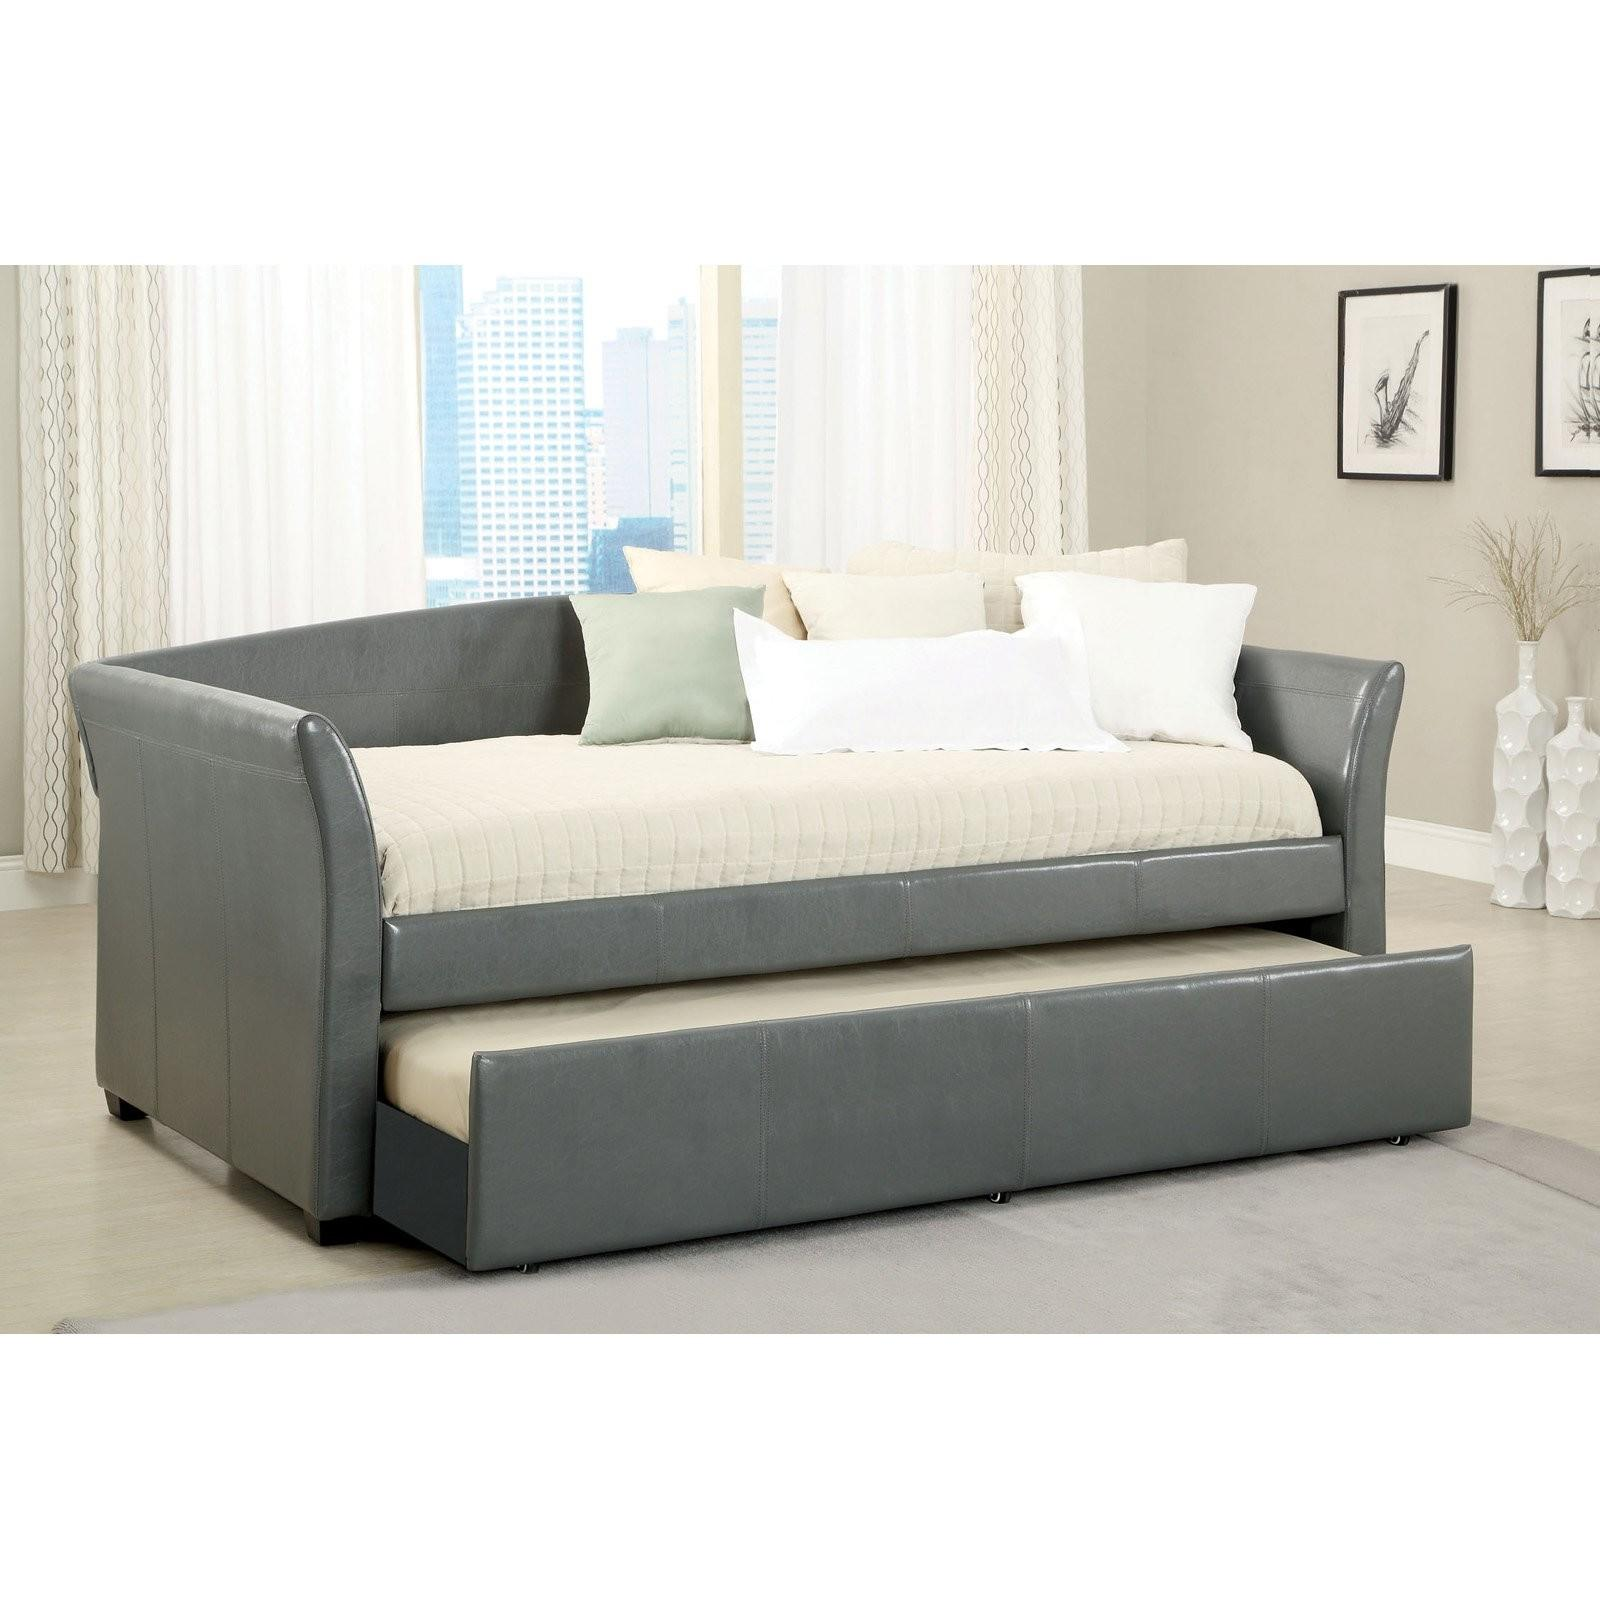 Furniture Modern Cheap Daybeds Designs Your Home